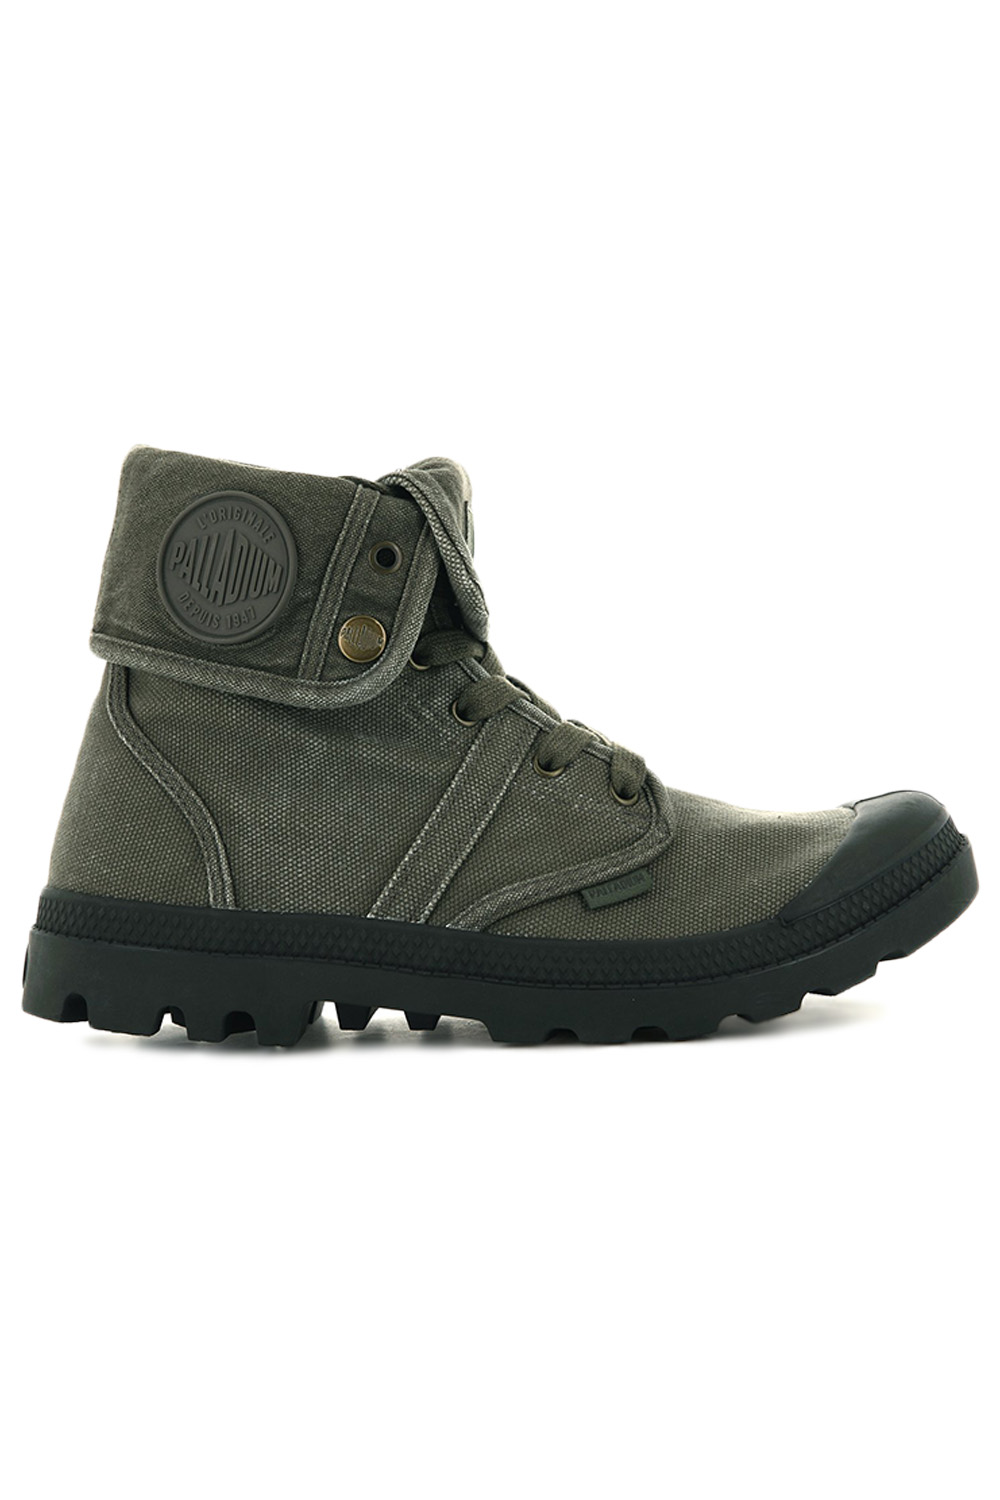 thumbnail 22 - Palladium Mens Pallabrouse Baggy Combat Military Desert Canvas Ankle Boots